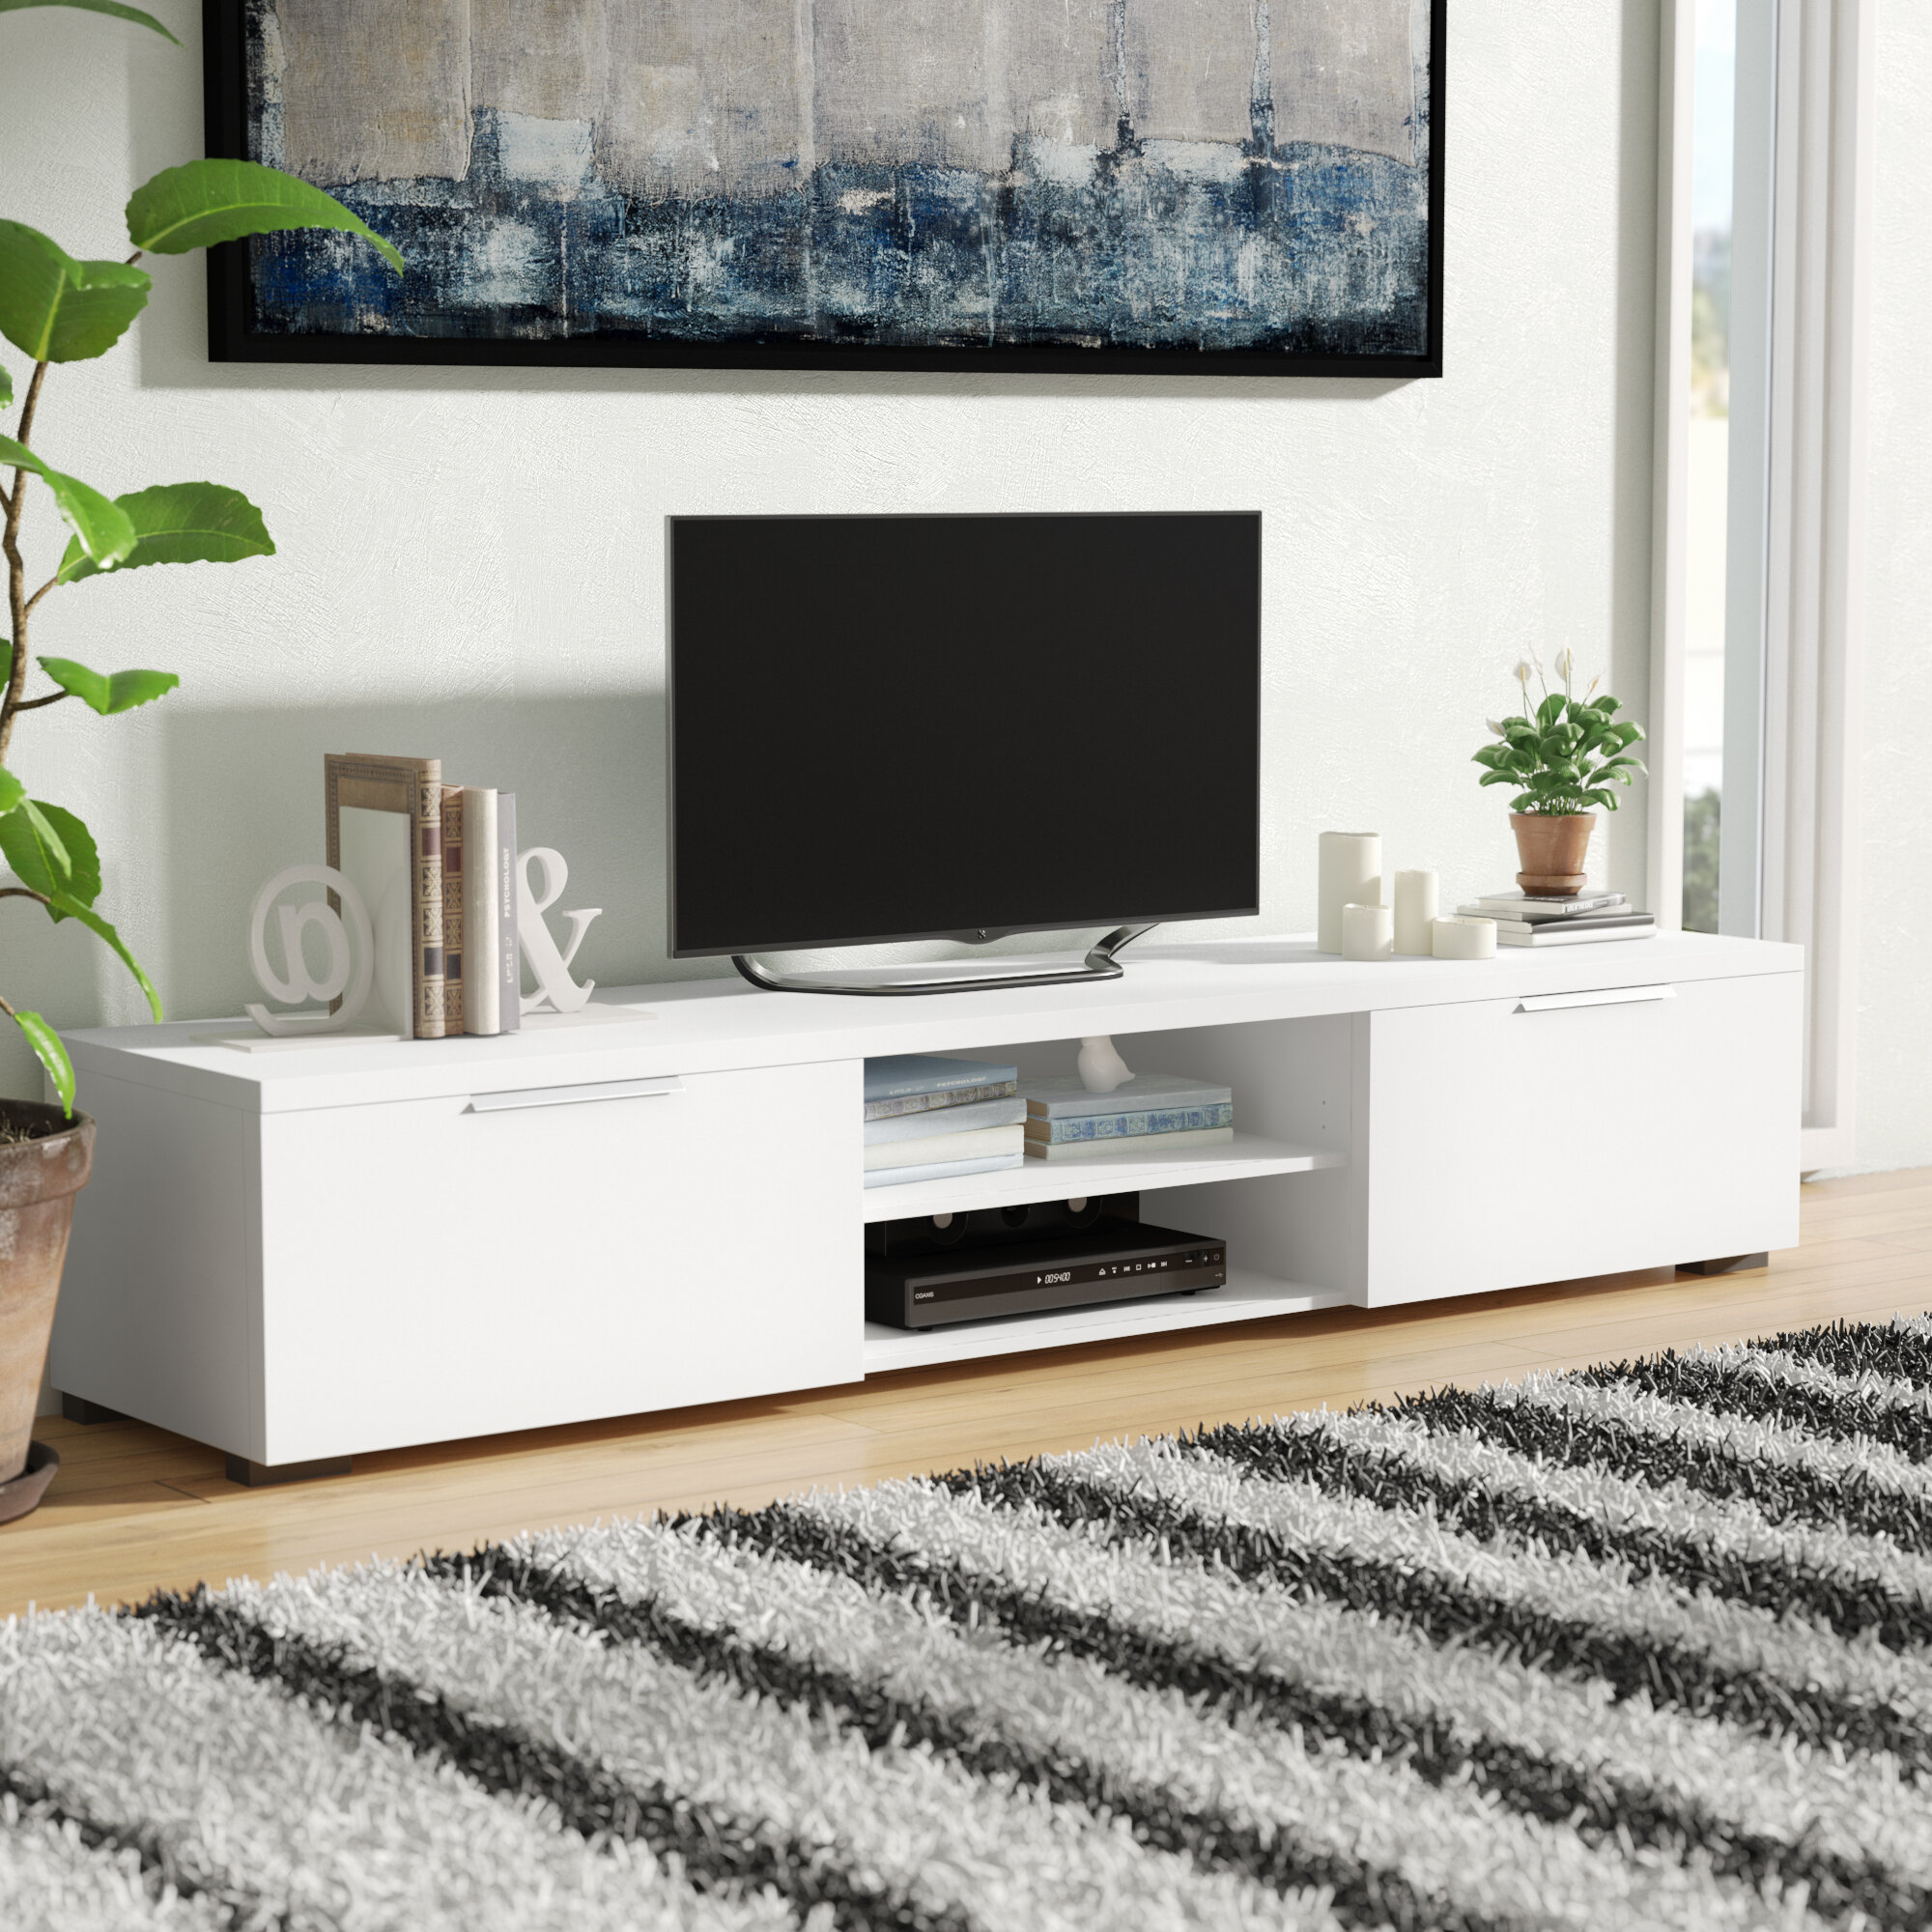 Rafael TV Stand for TVs up to 75 inches